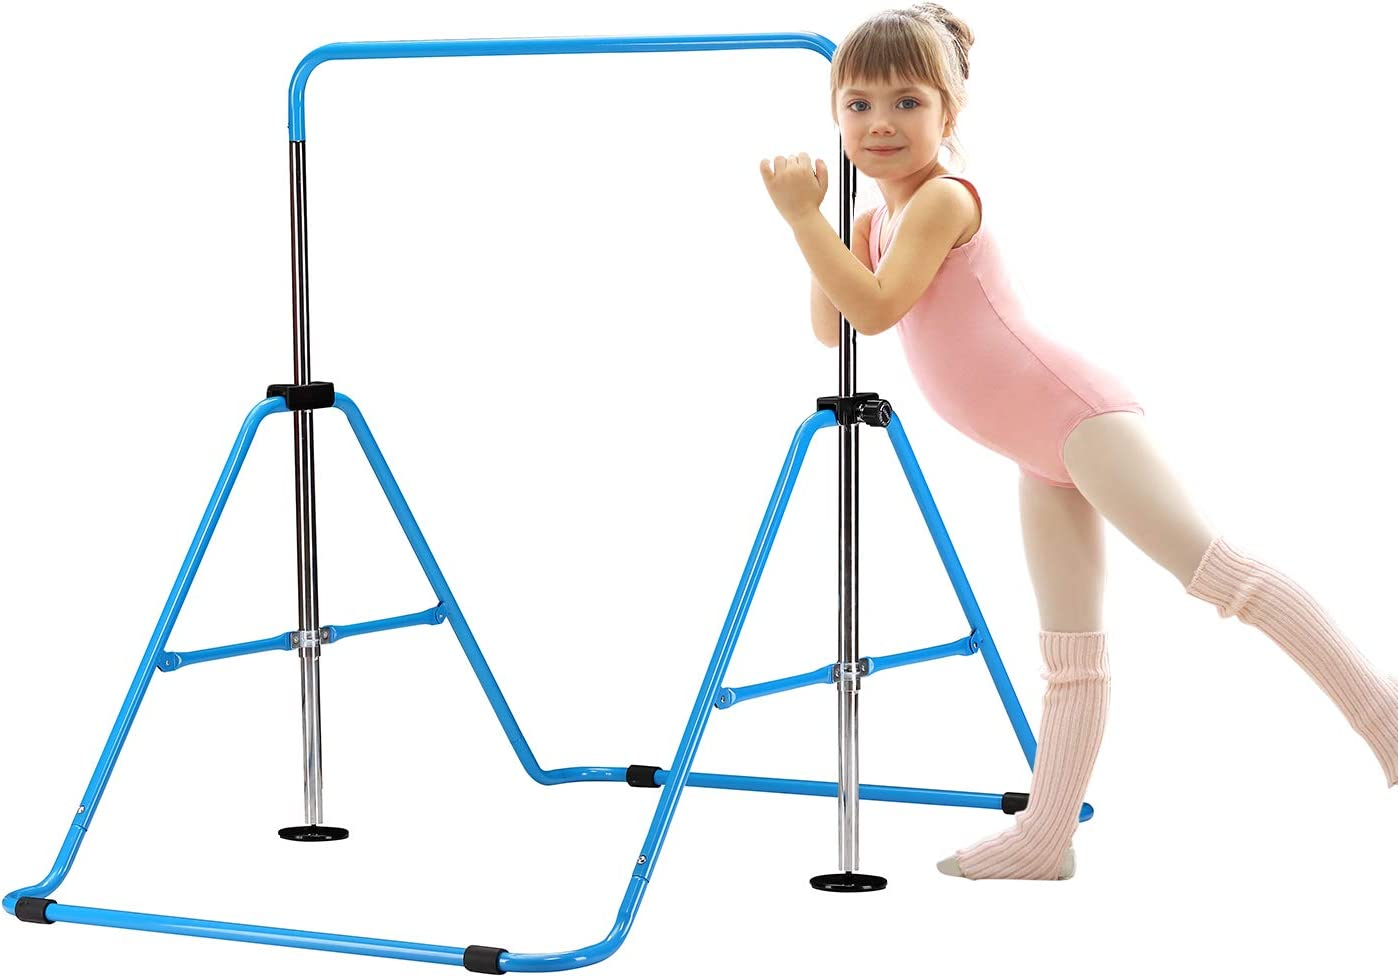 HYD-Parts Gymnastics Kip Bar Kids, Junior Training Bar,Height Adjustable Horizontal Bars, Folding Gymnastics Bars Monkey Bars for Kids